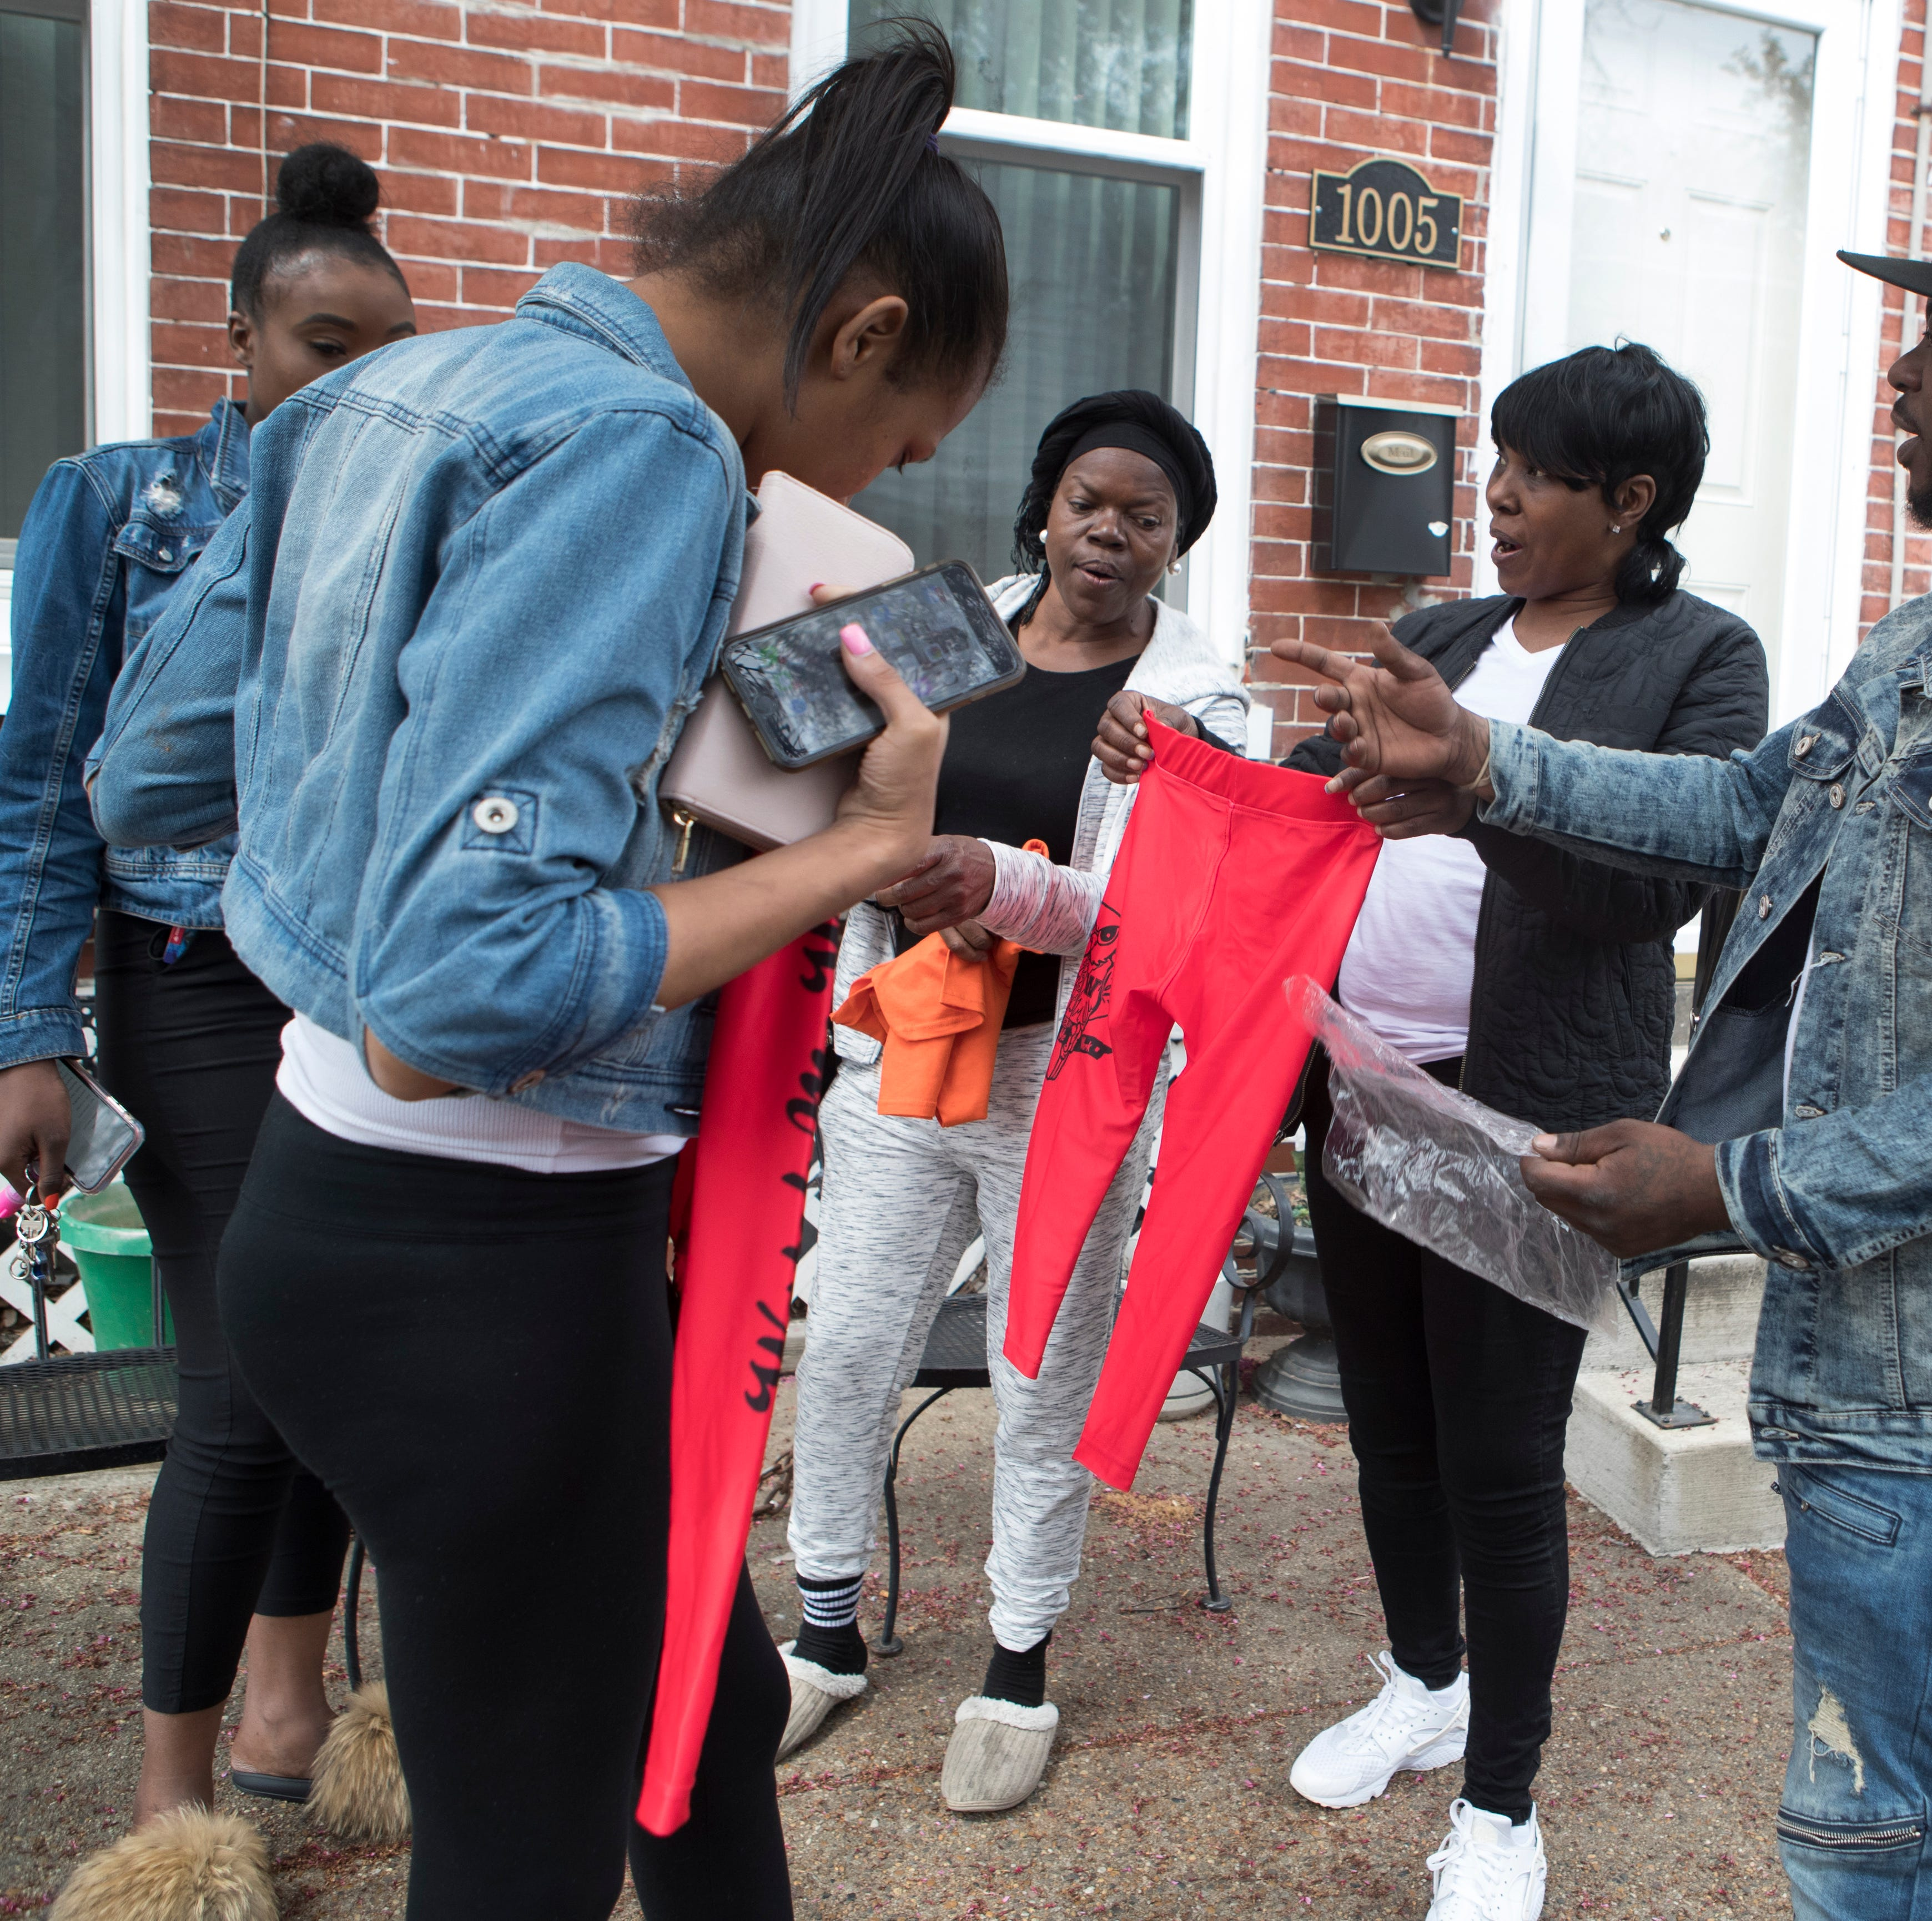 On Wilmington's East Side, residents reject labels of violence and crime after 6 shot